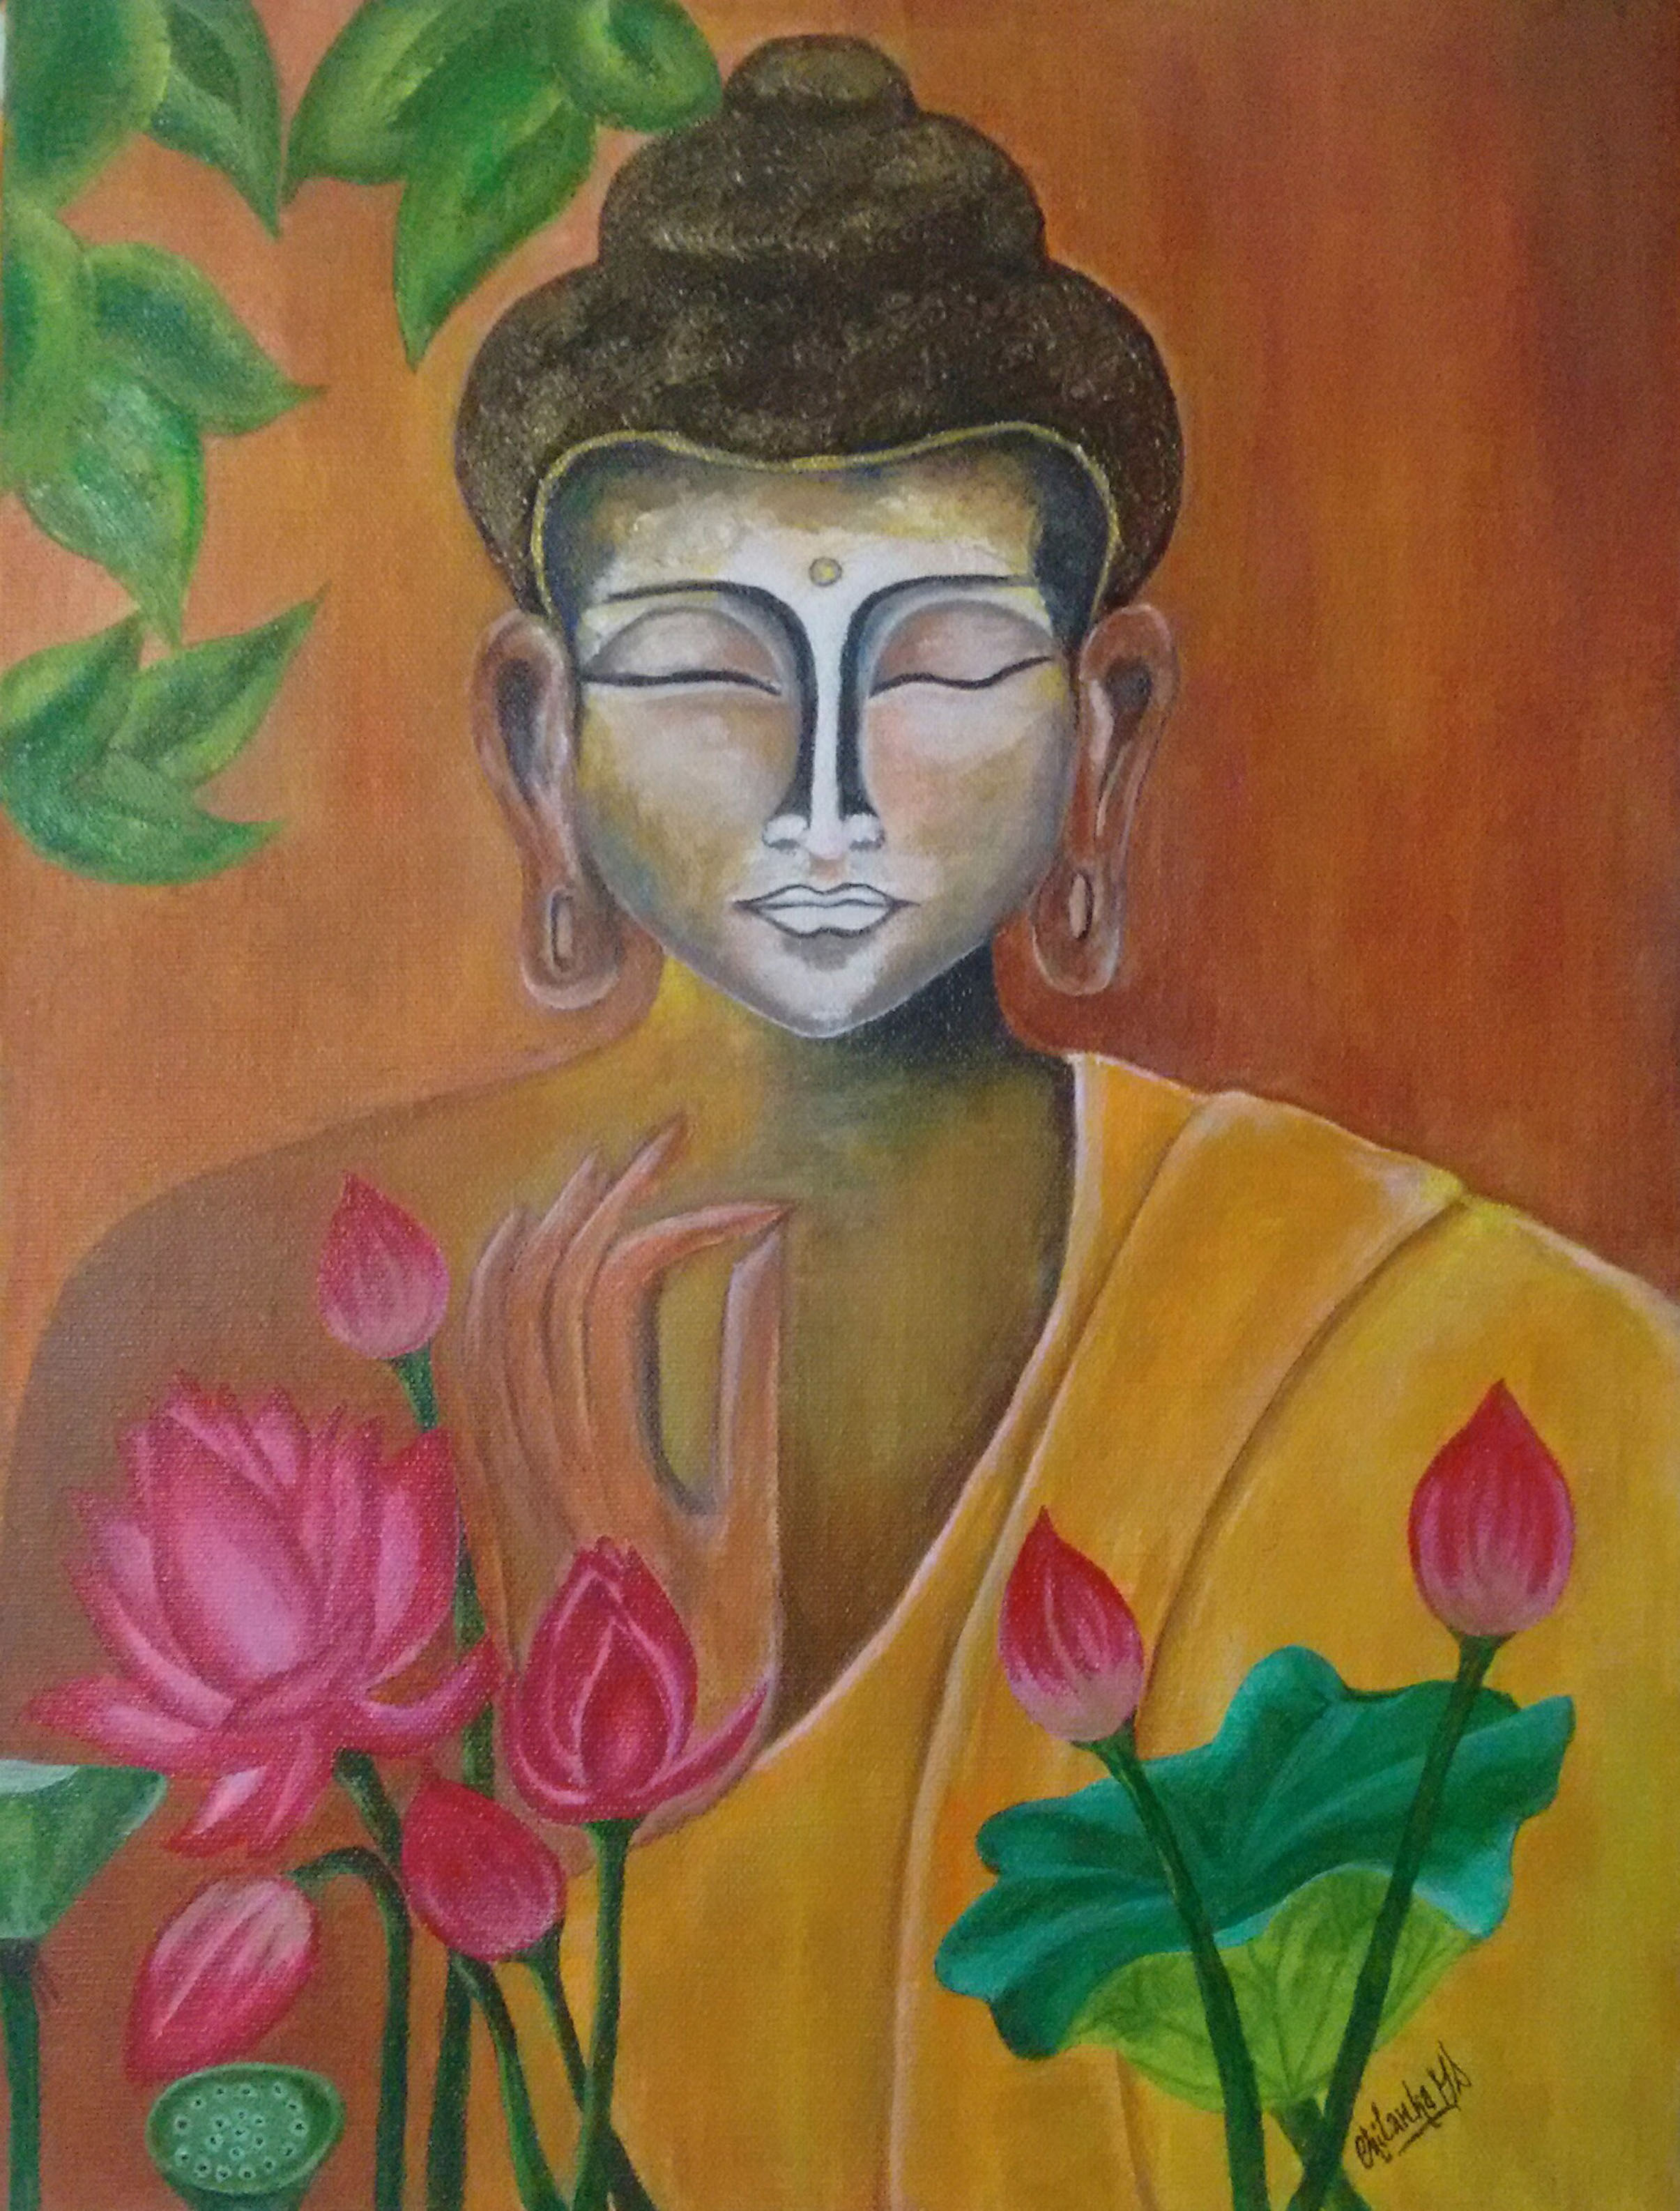 Buddha: Reborn As Enlighted Fine Art by Chilanka Md